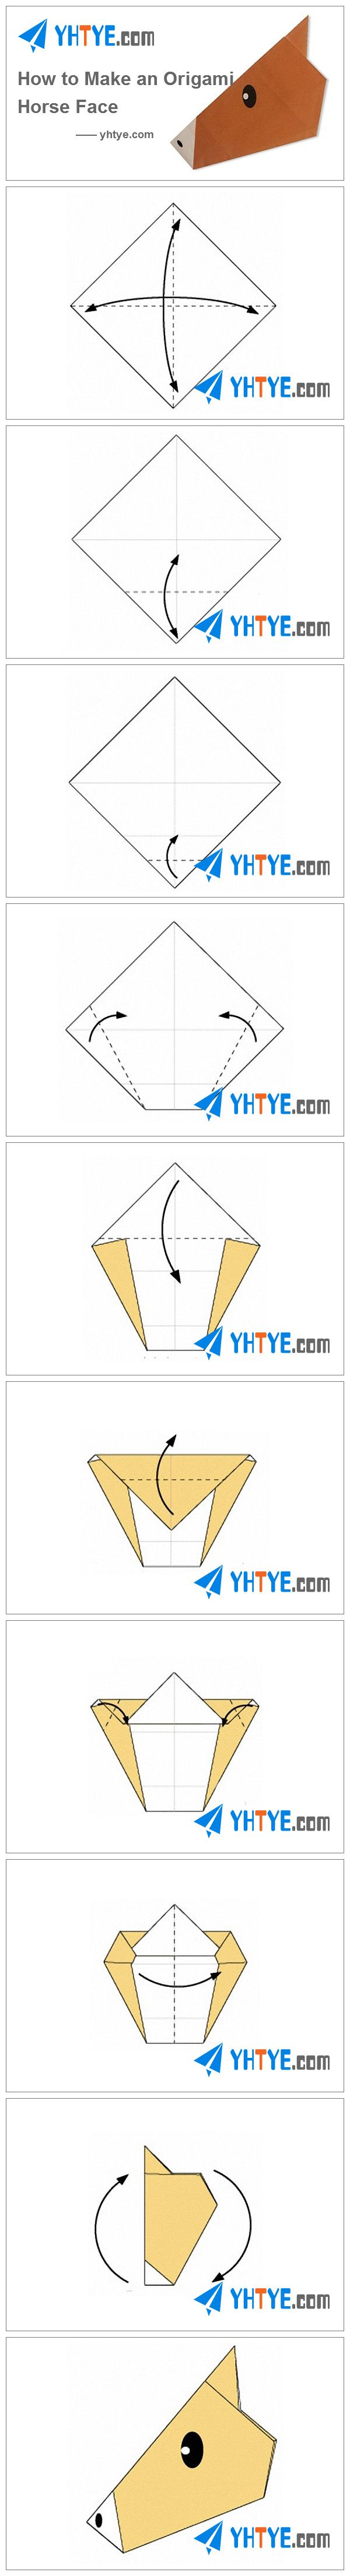 How to Make an Origami Horse's Face Origami horse